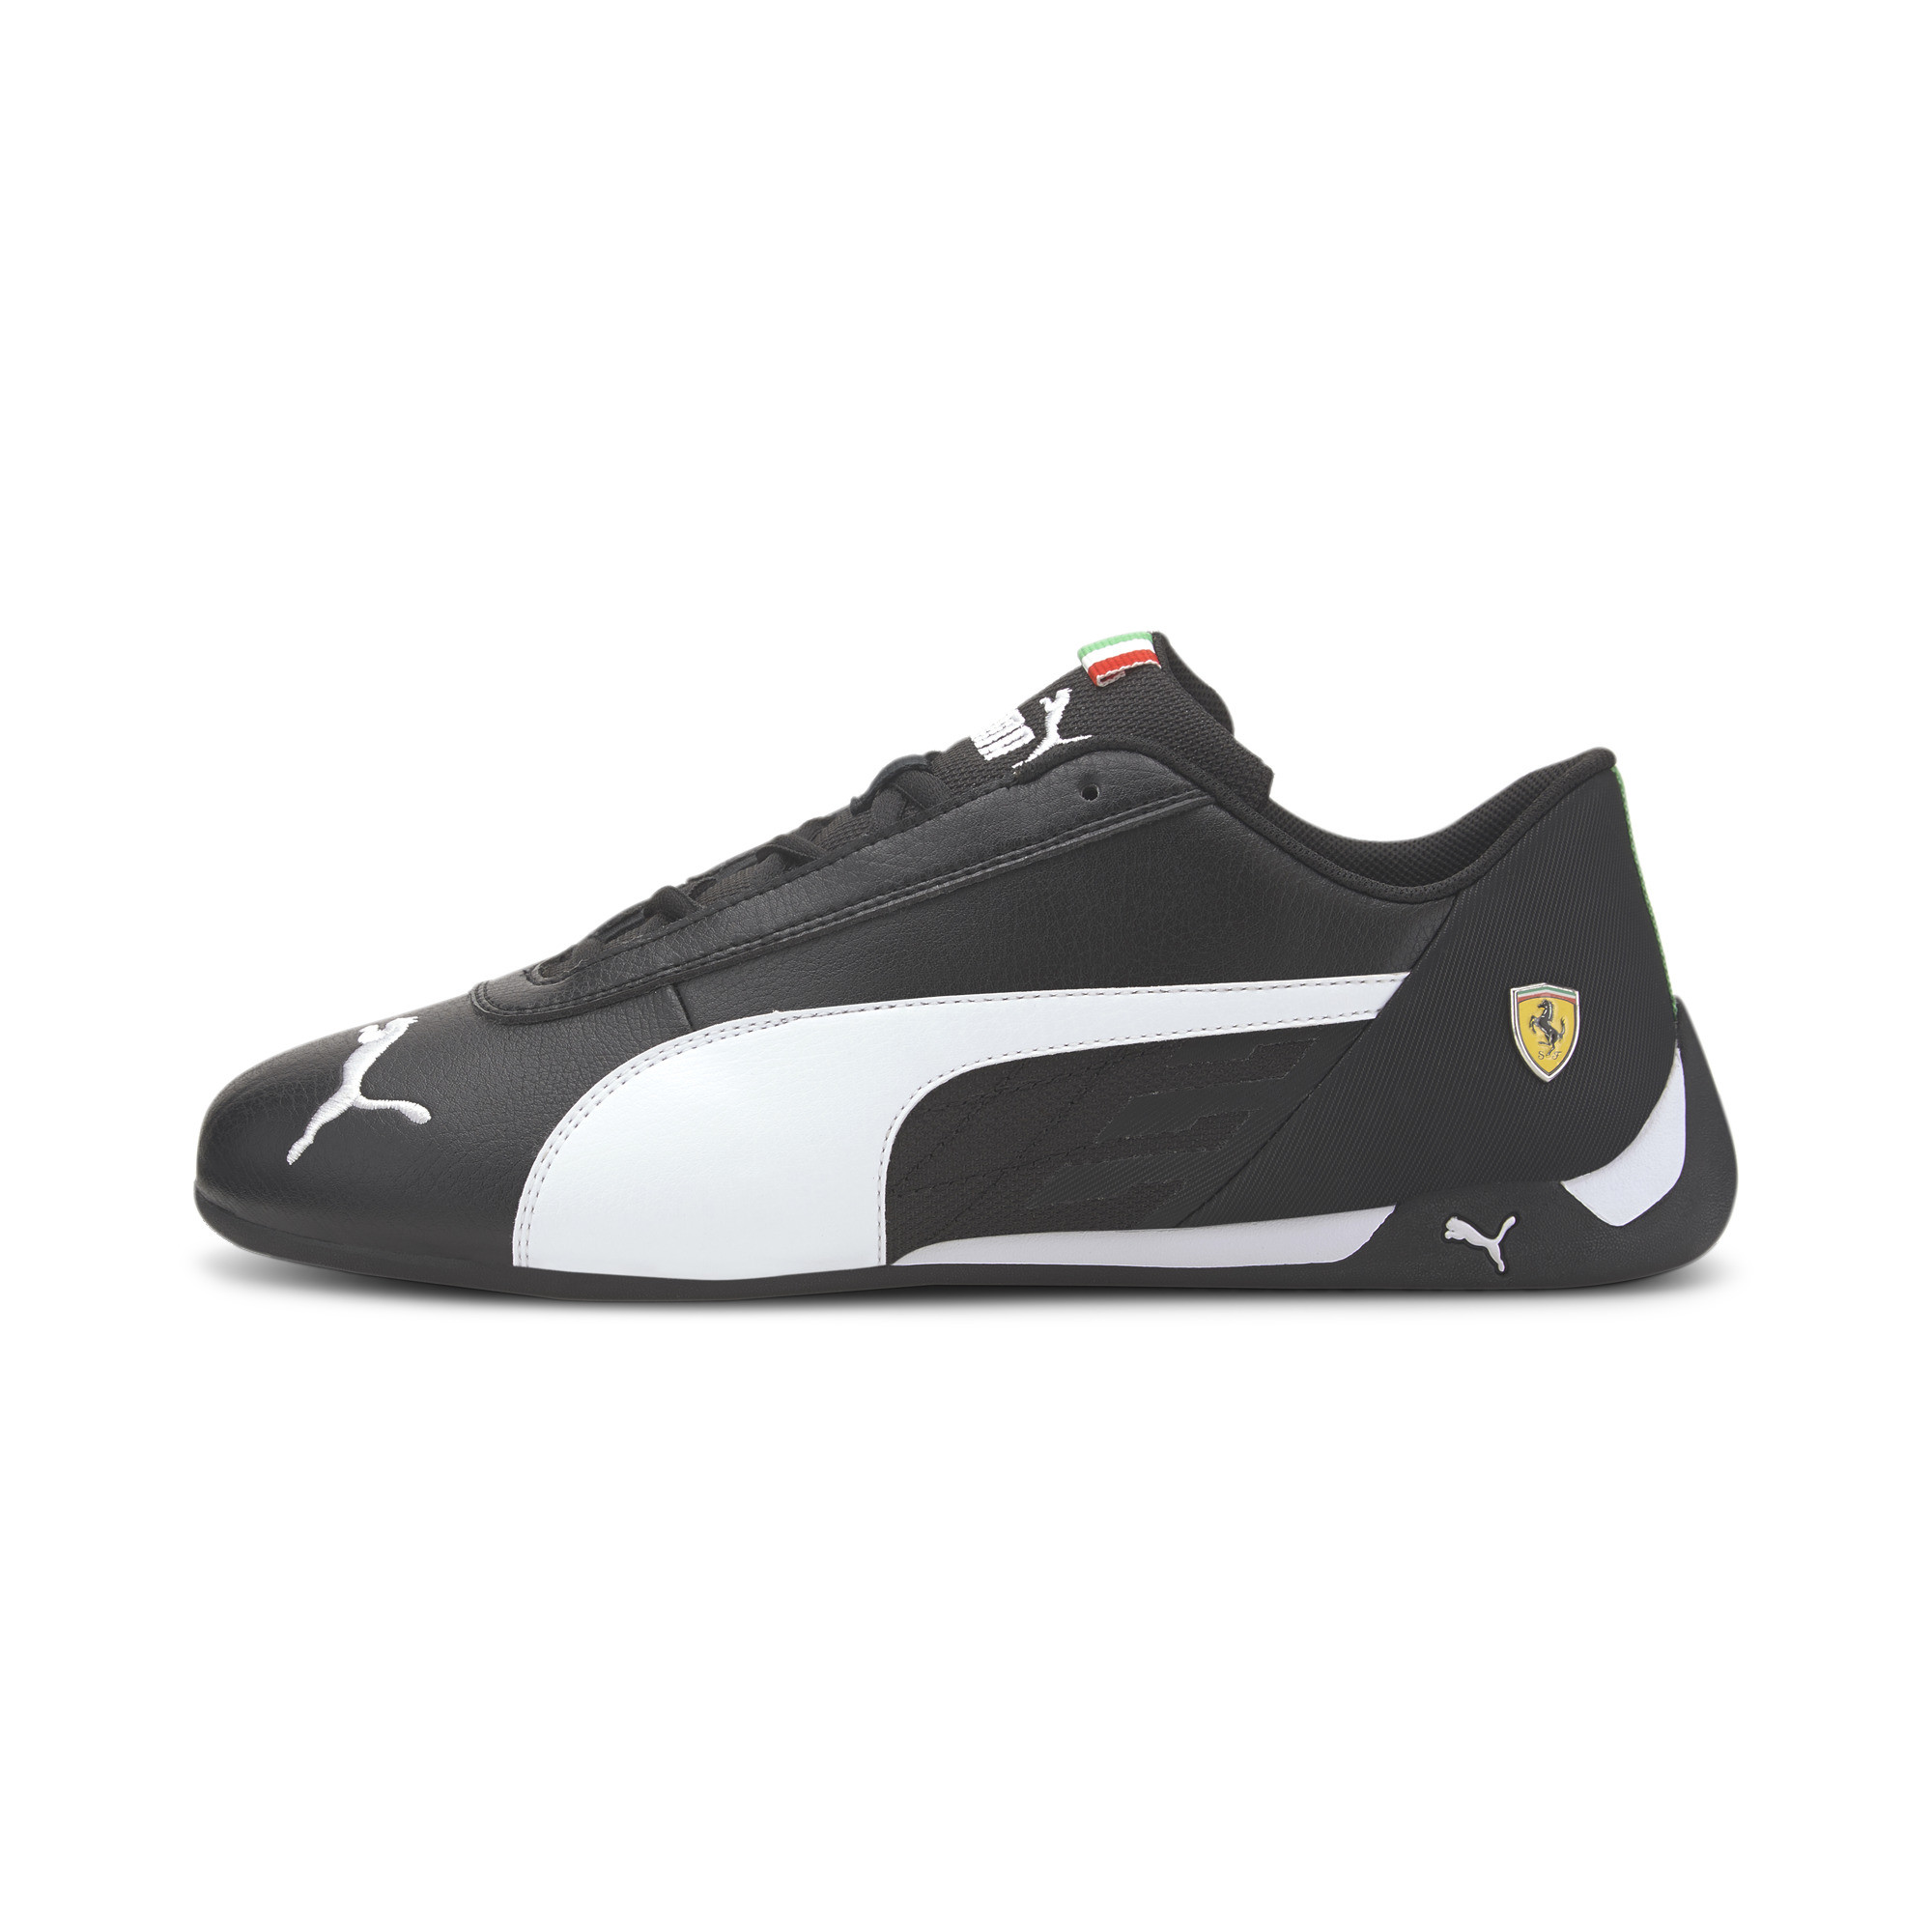 PUMA-Men-039-s-Scuderia-Ferrari-R-Cat-Motorsport-Shoes thumbnail 12